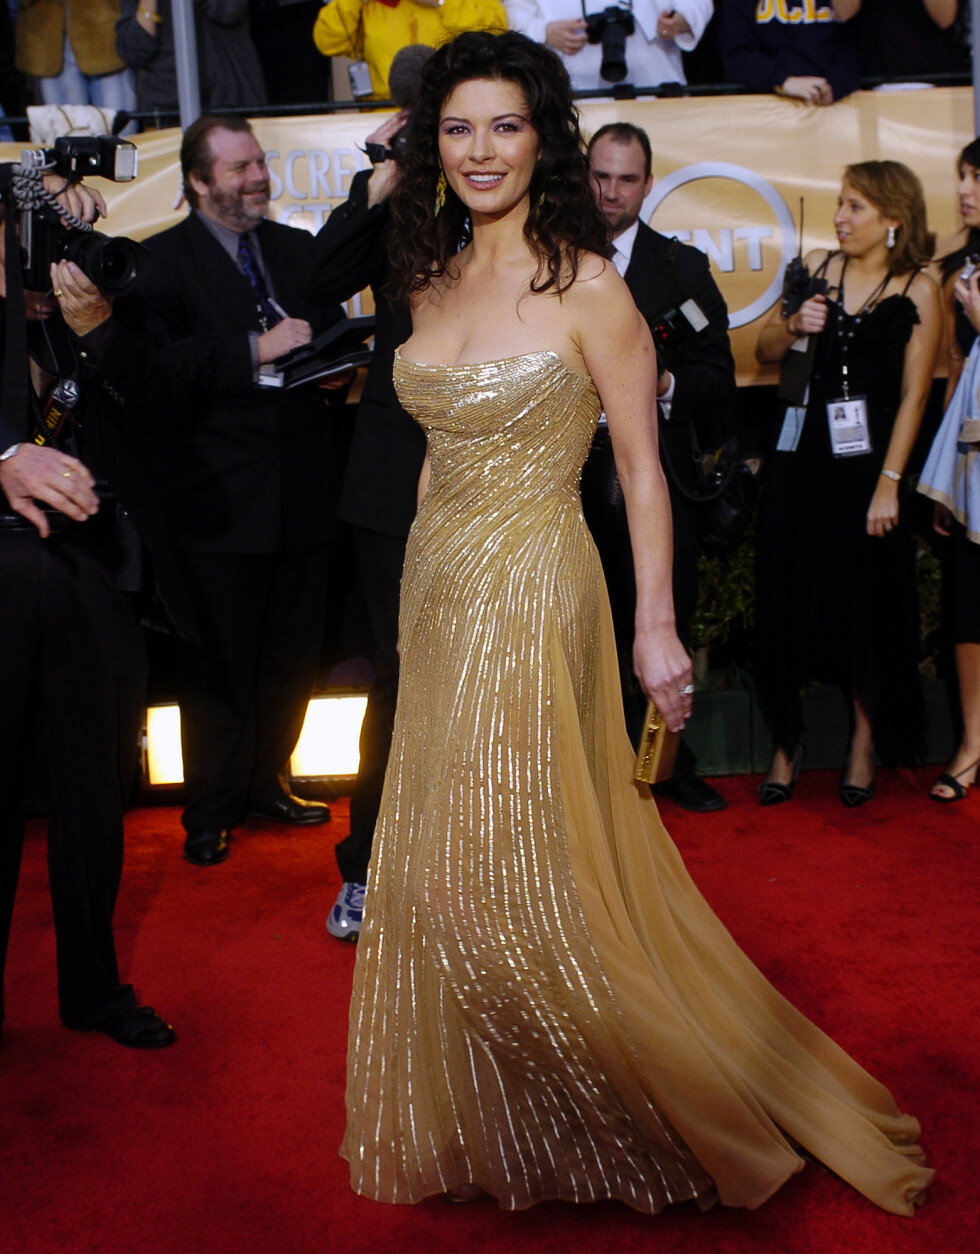 Zeta-Jones på Screen Actors Guild Awards i 2004. Foto: NTB Scanpix